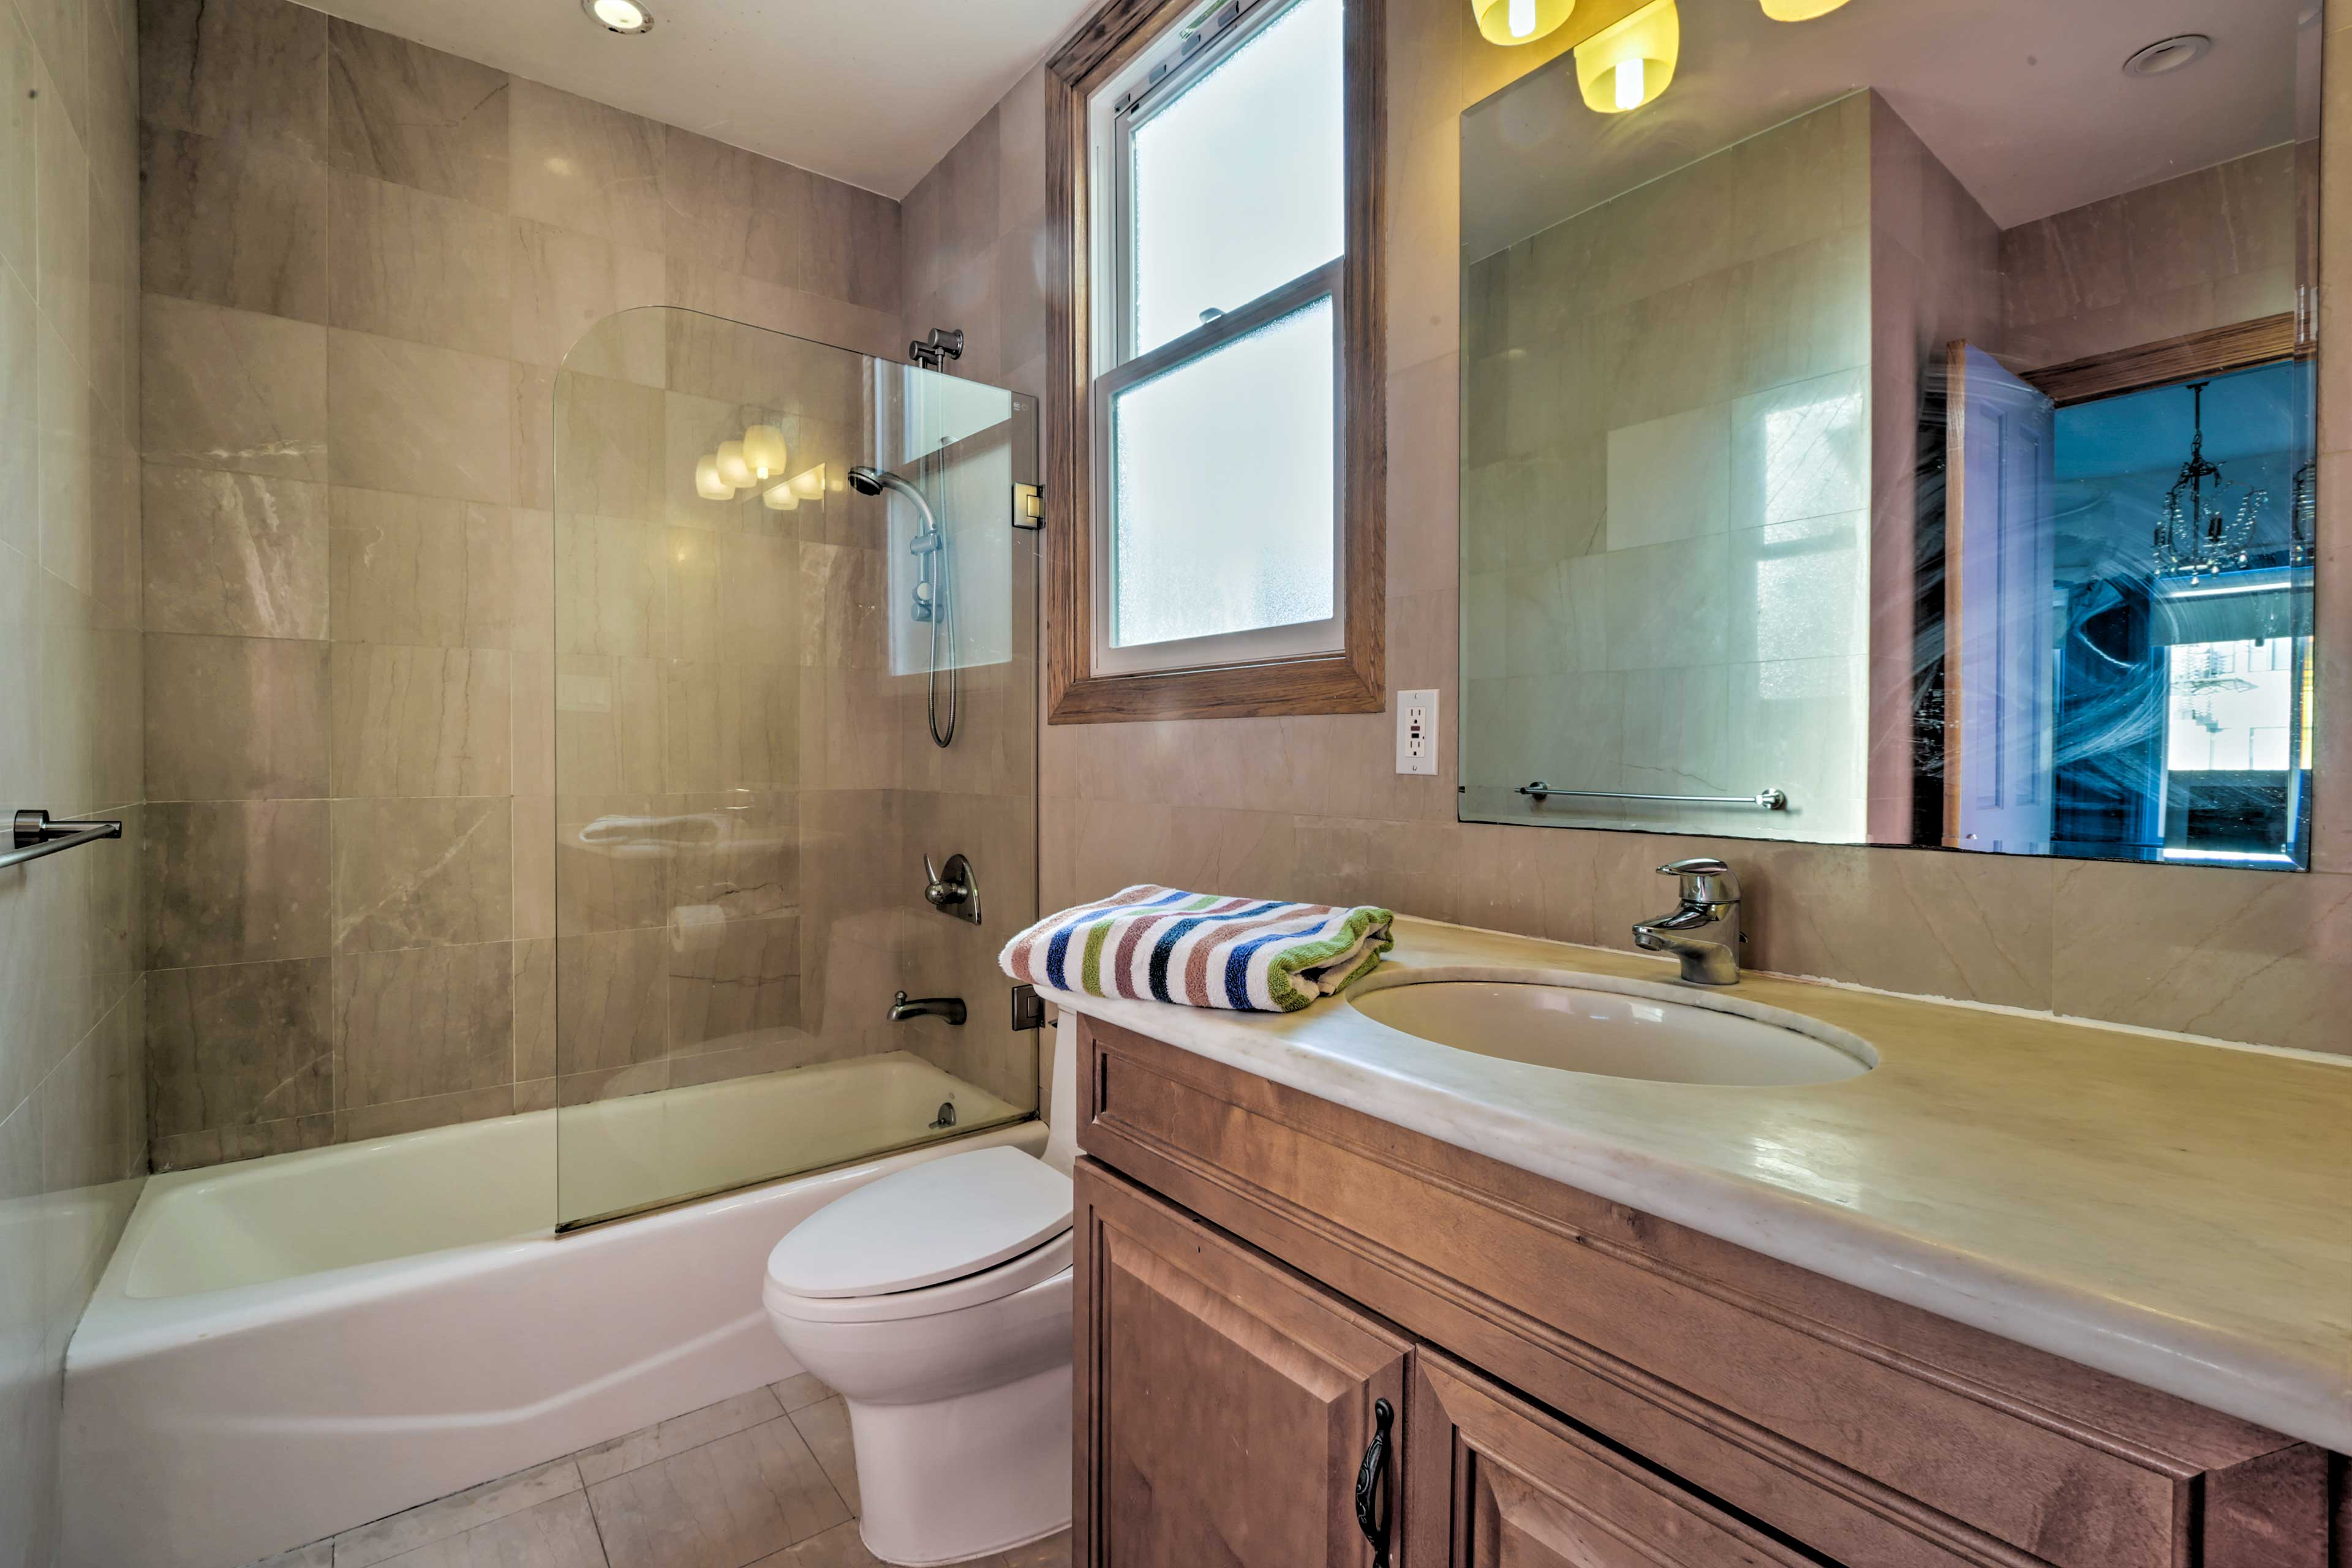 Rinse off in the tub/shower combo, complete with a glass door and marble tiling.